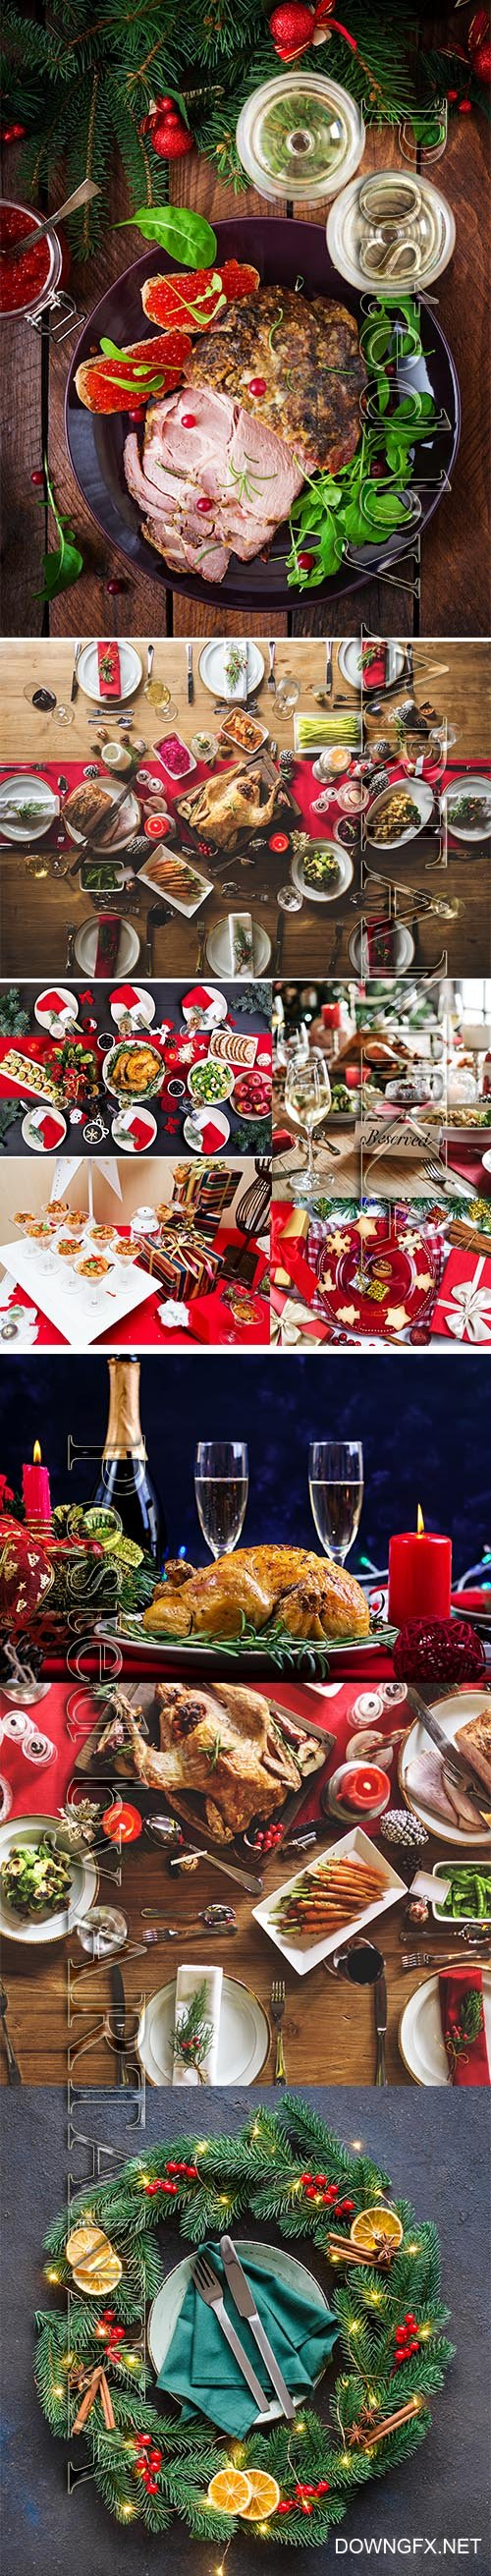 Christmas Family Dinner Stock Images Vol 2